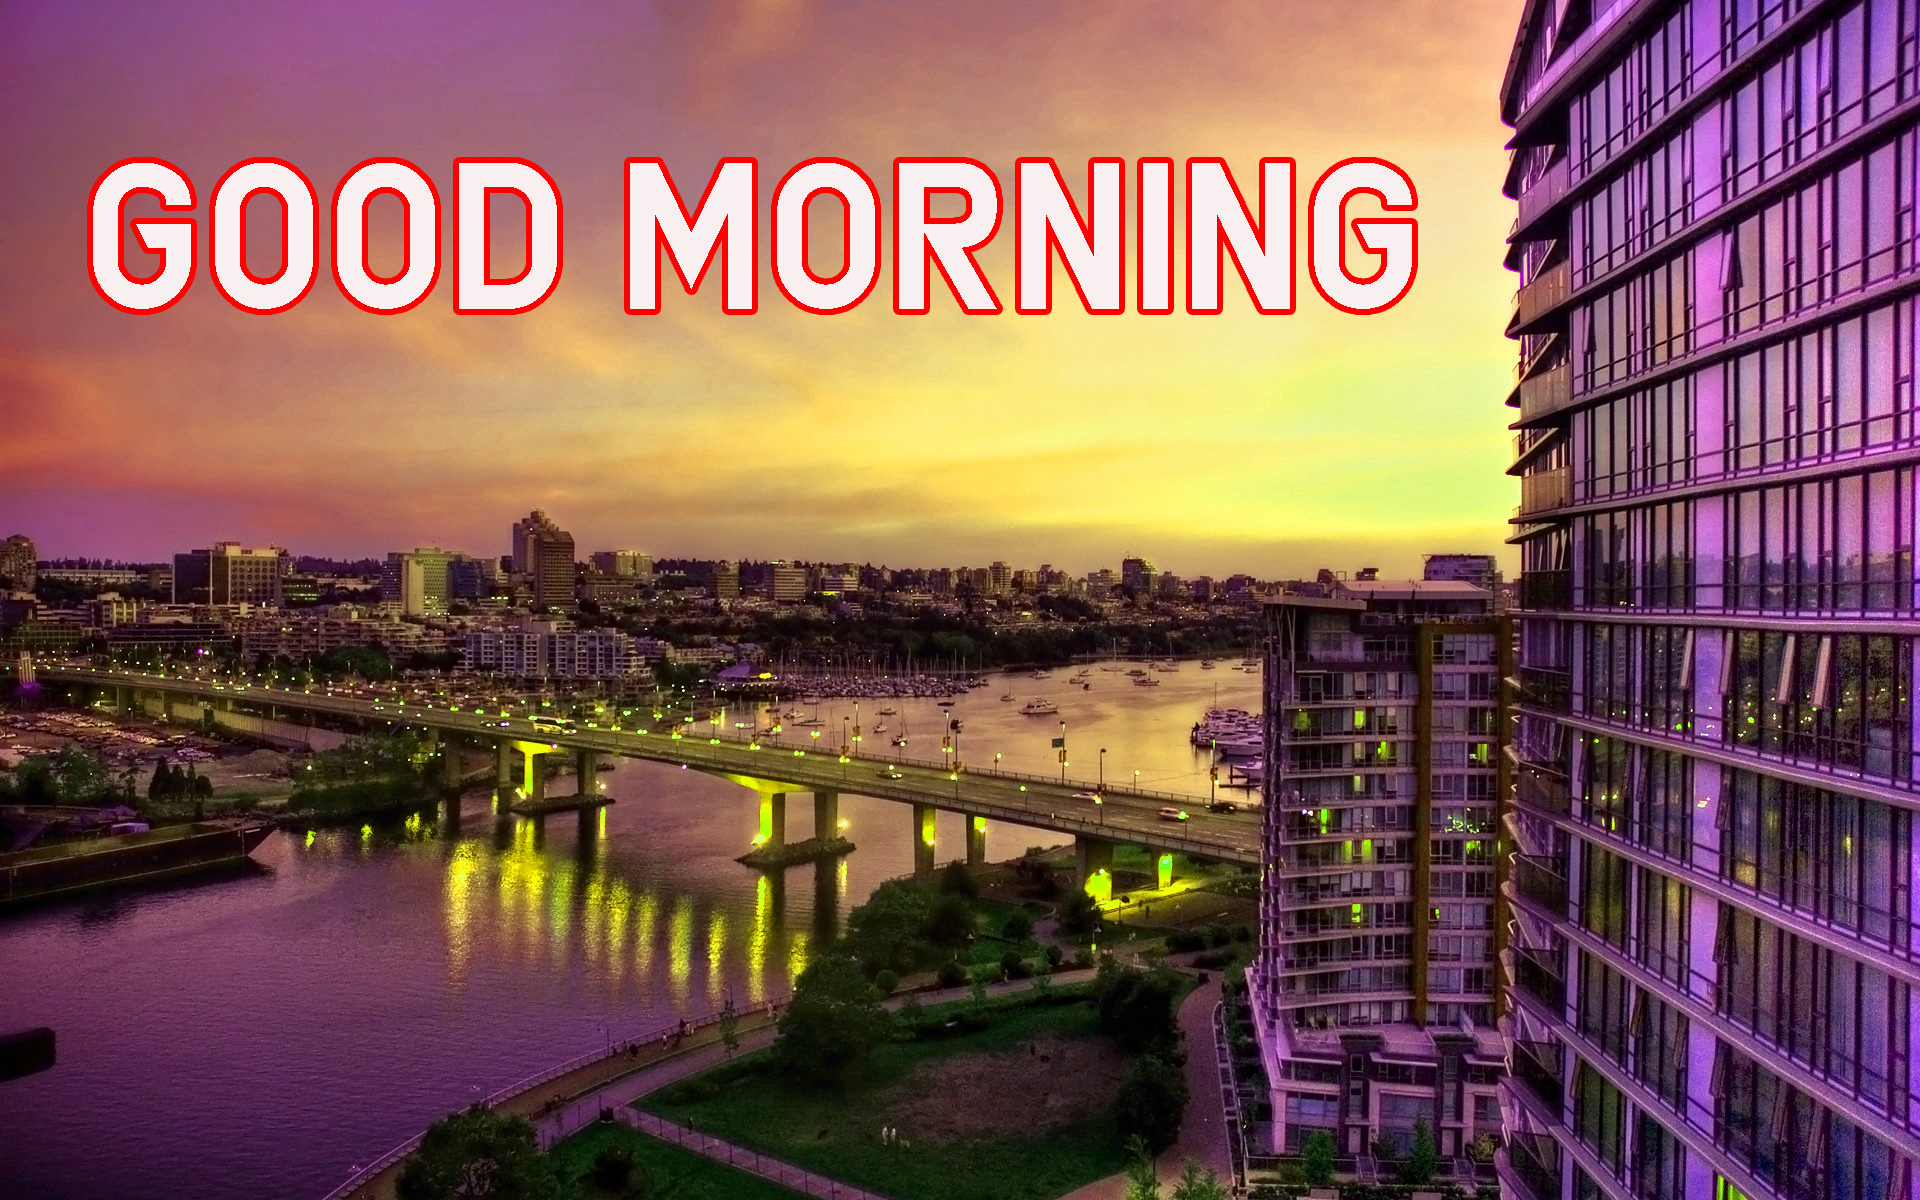 GOOD MORNING IMAGE PICS WALLPAPER FREE HDMorning Image 3d Wallpaper (43)